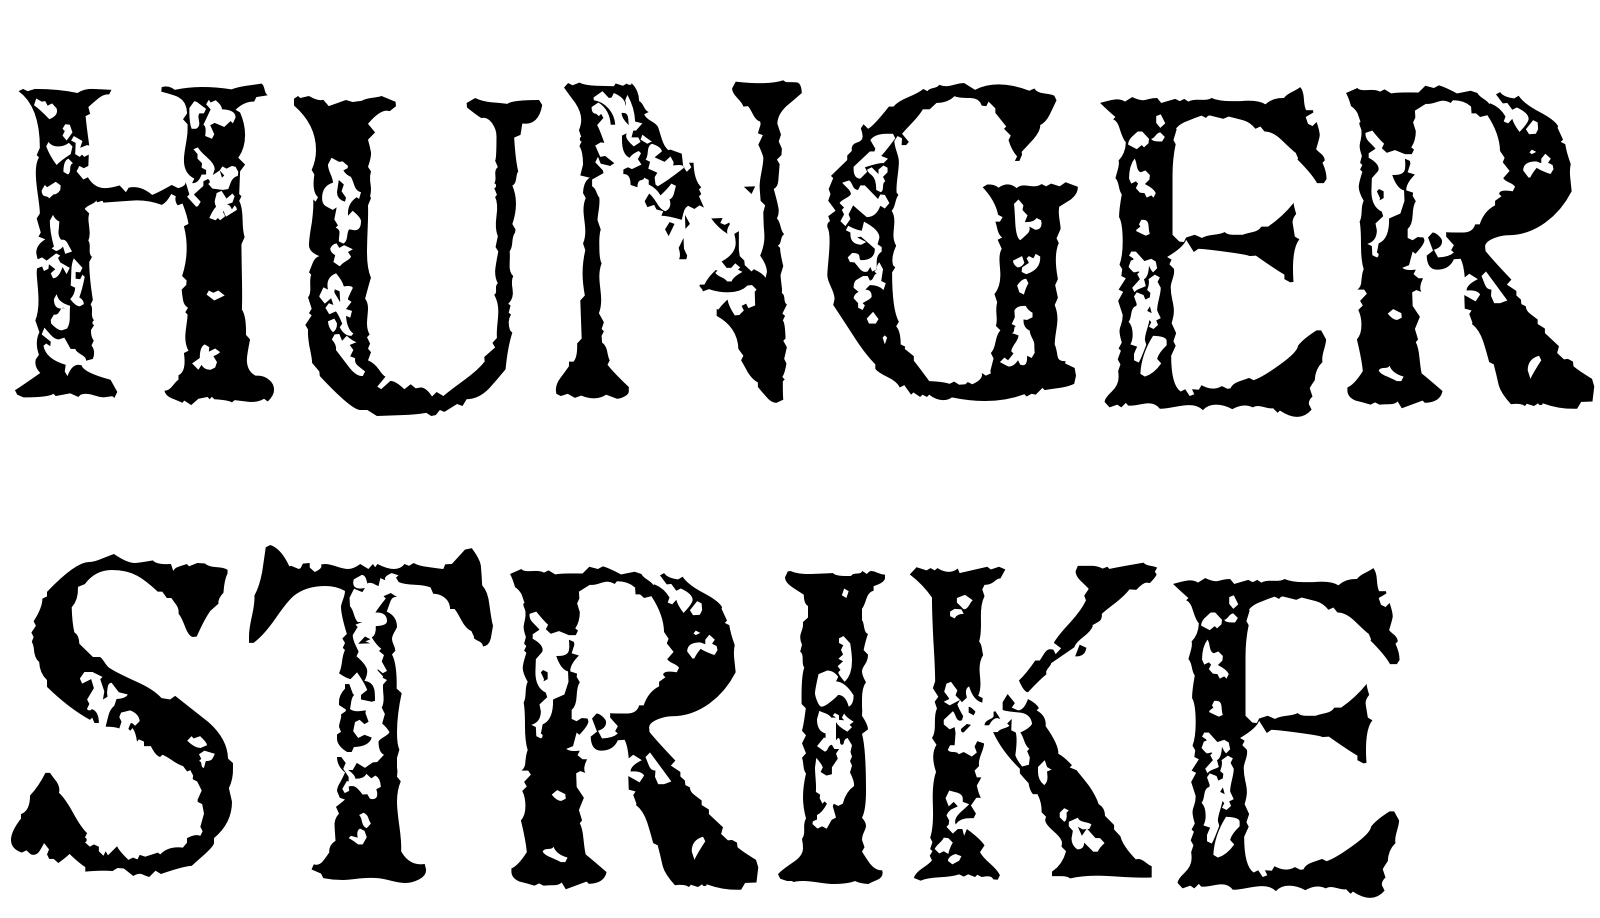 Tufts Students Begin Hunger Strike To Stop Janitor Cuts